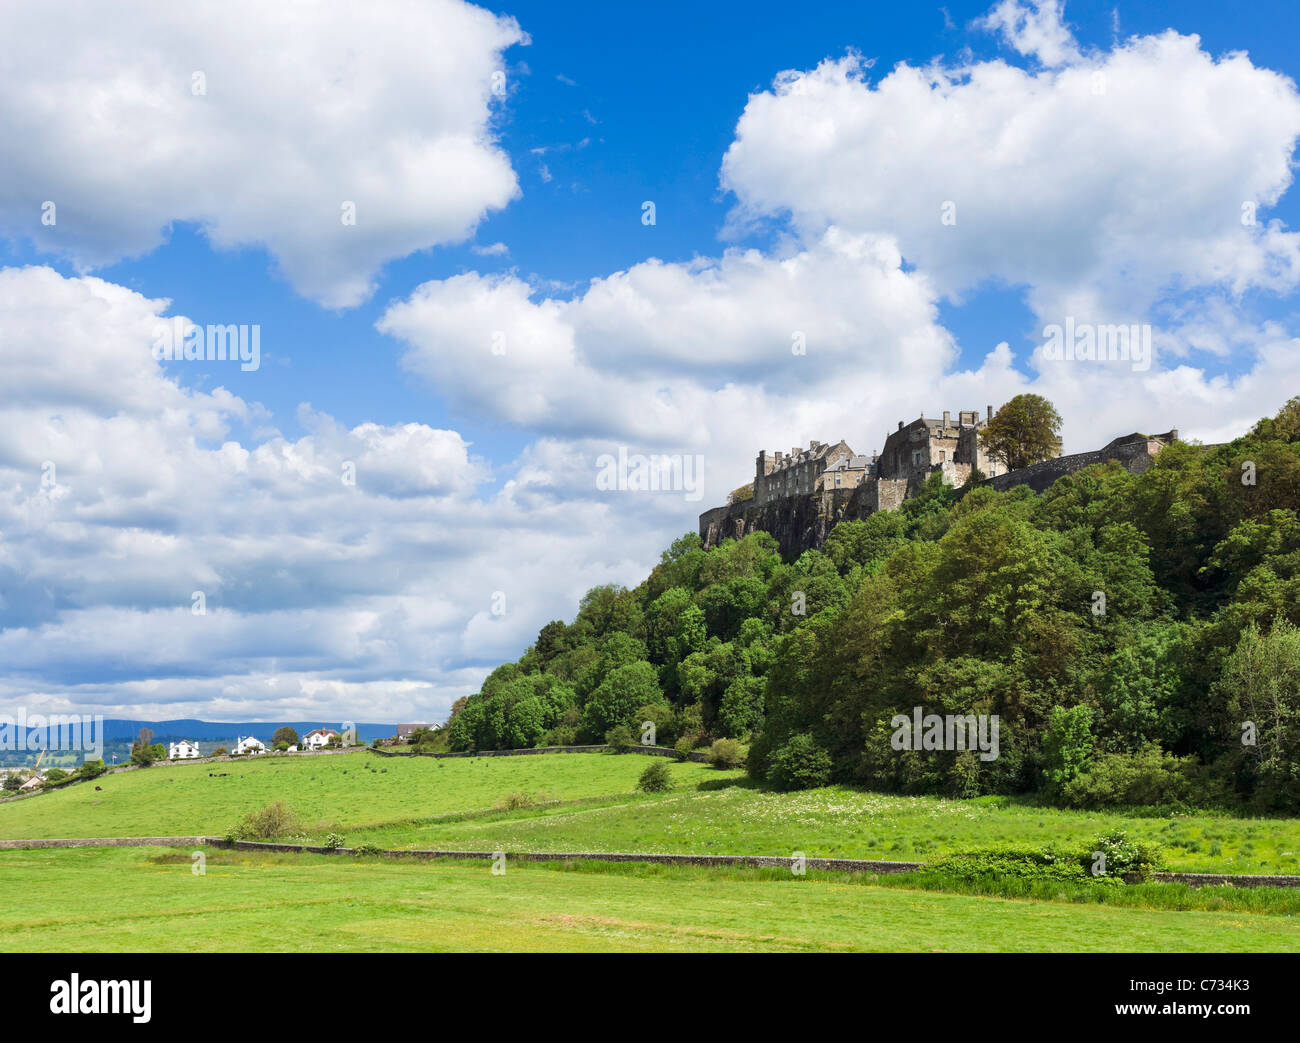 Stirling Castle viewed from King's Knot Gardens, Stirling, Scotland, UK Stock Photo